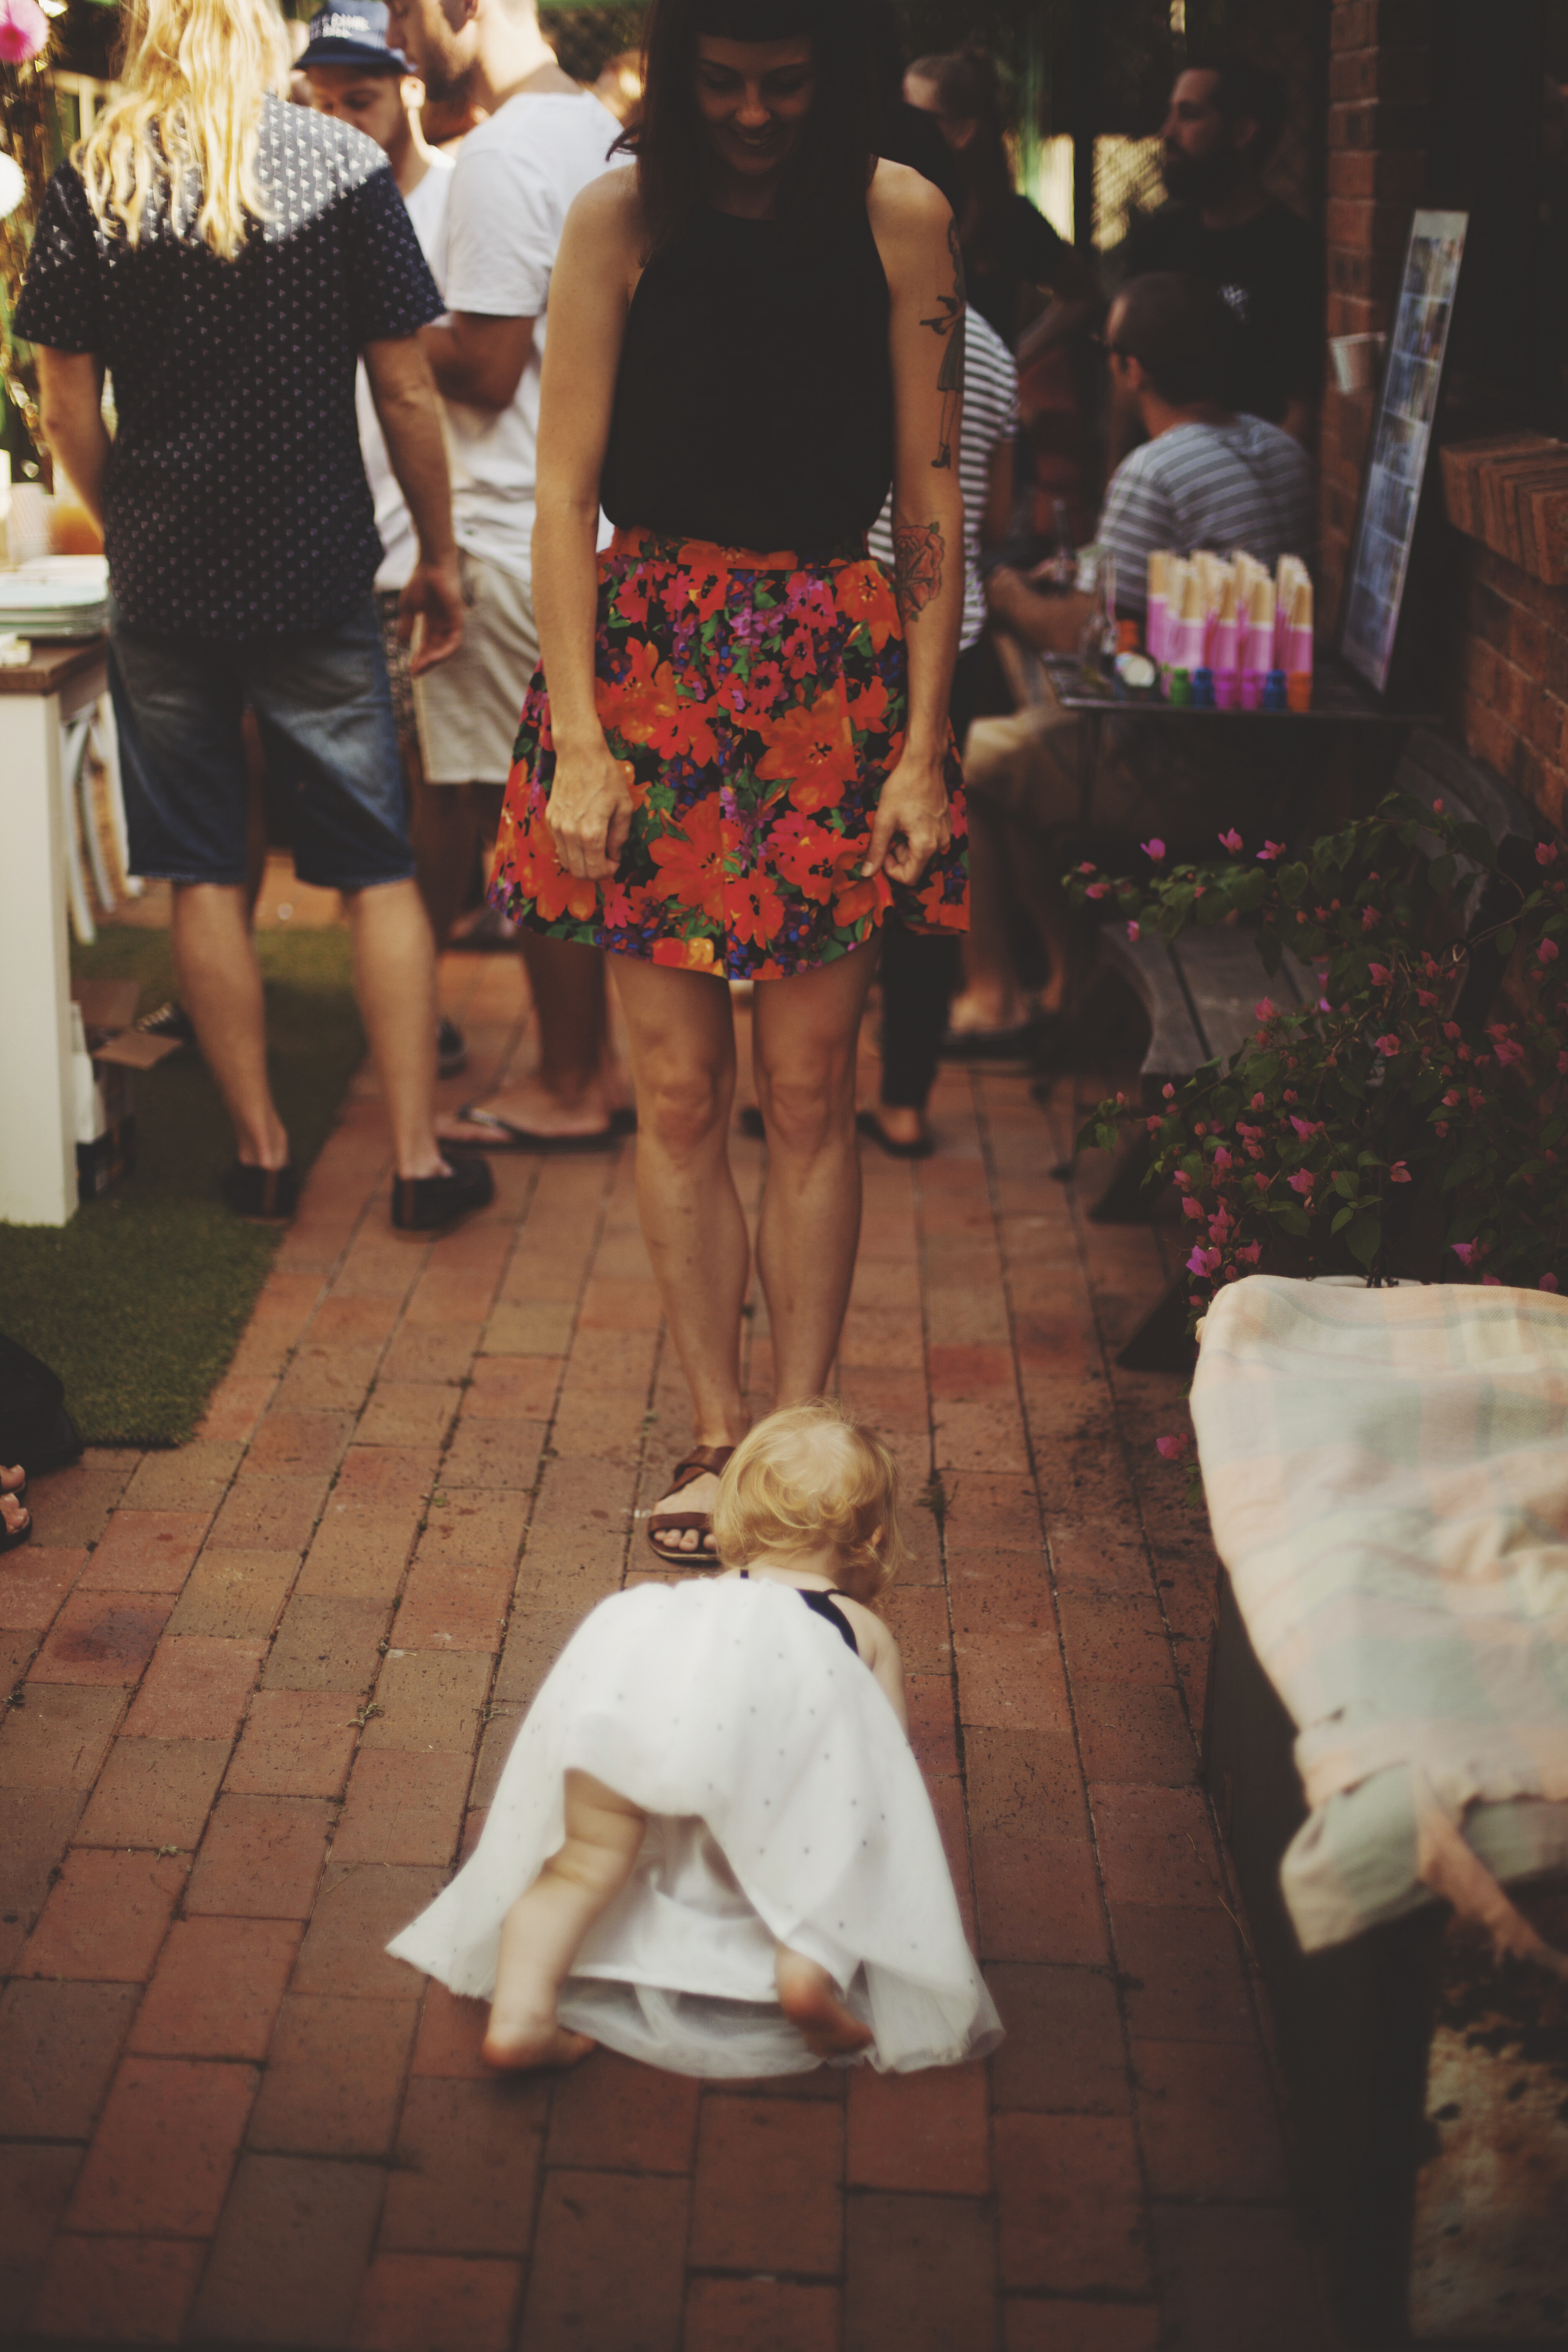 baby crawling on floor surrounded by people at first birthday party